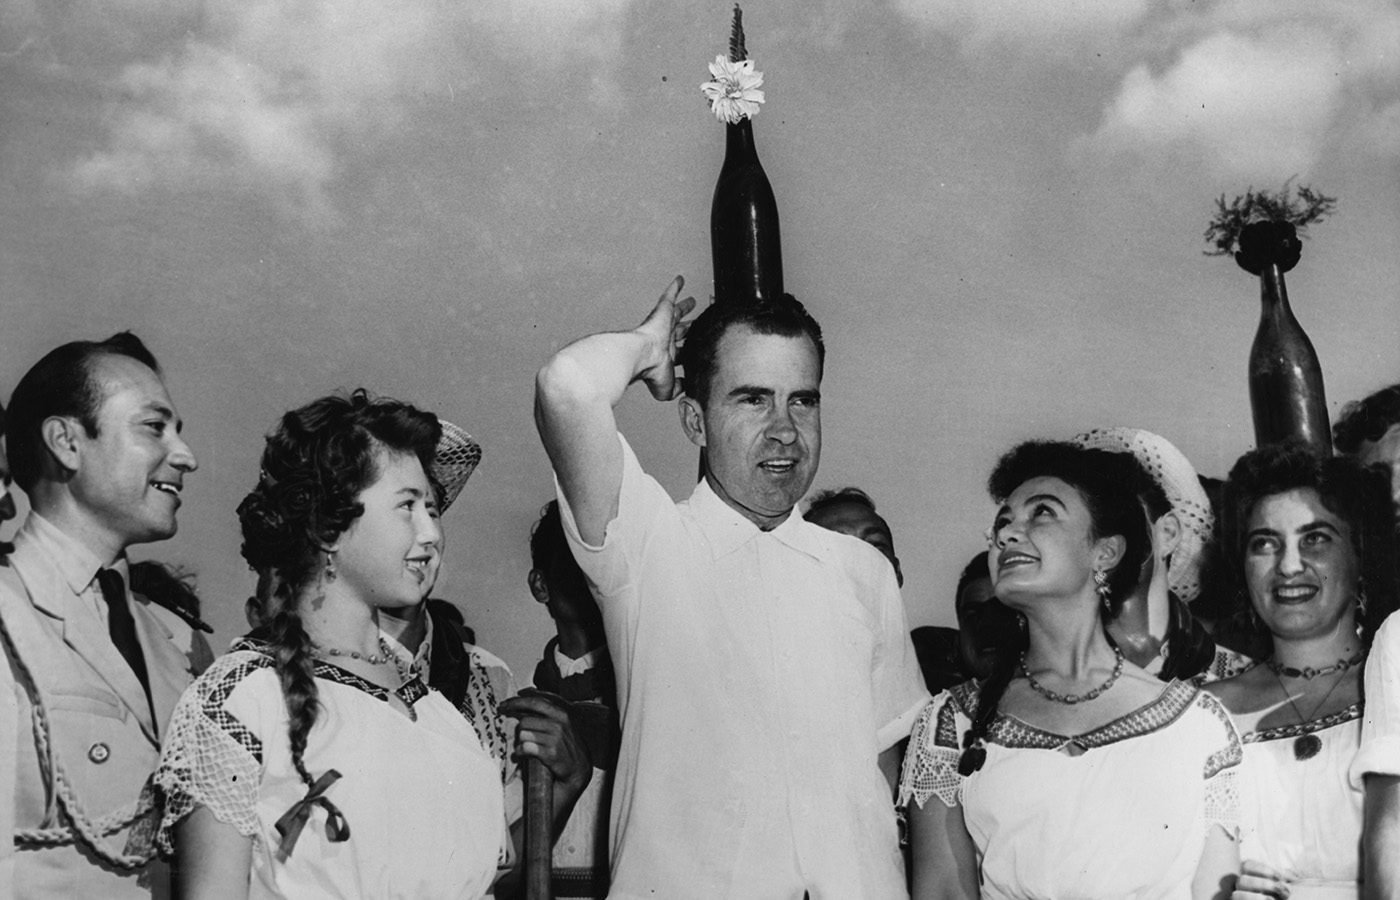 Richard Nixon balances a bottle on his head